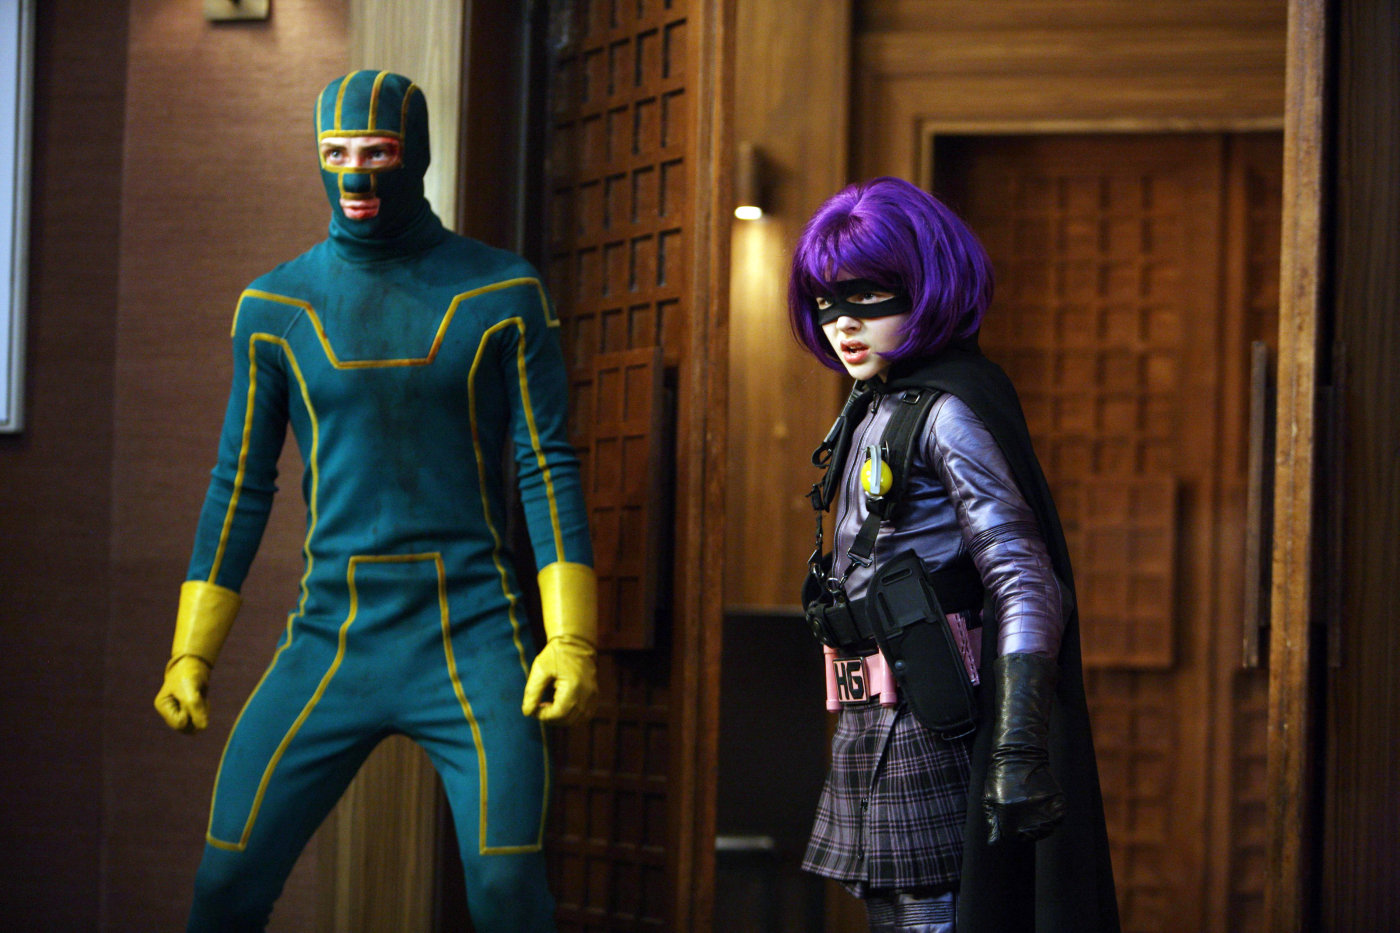 New on DVD – August 3, 2010 – Kick-Ass and The Ghost Writer